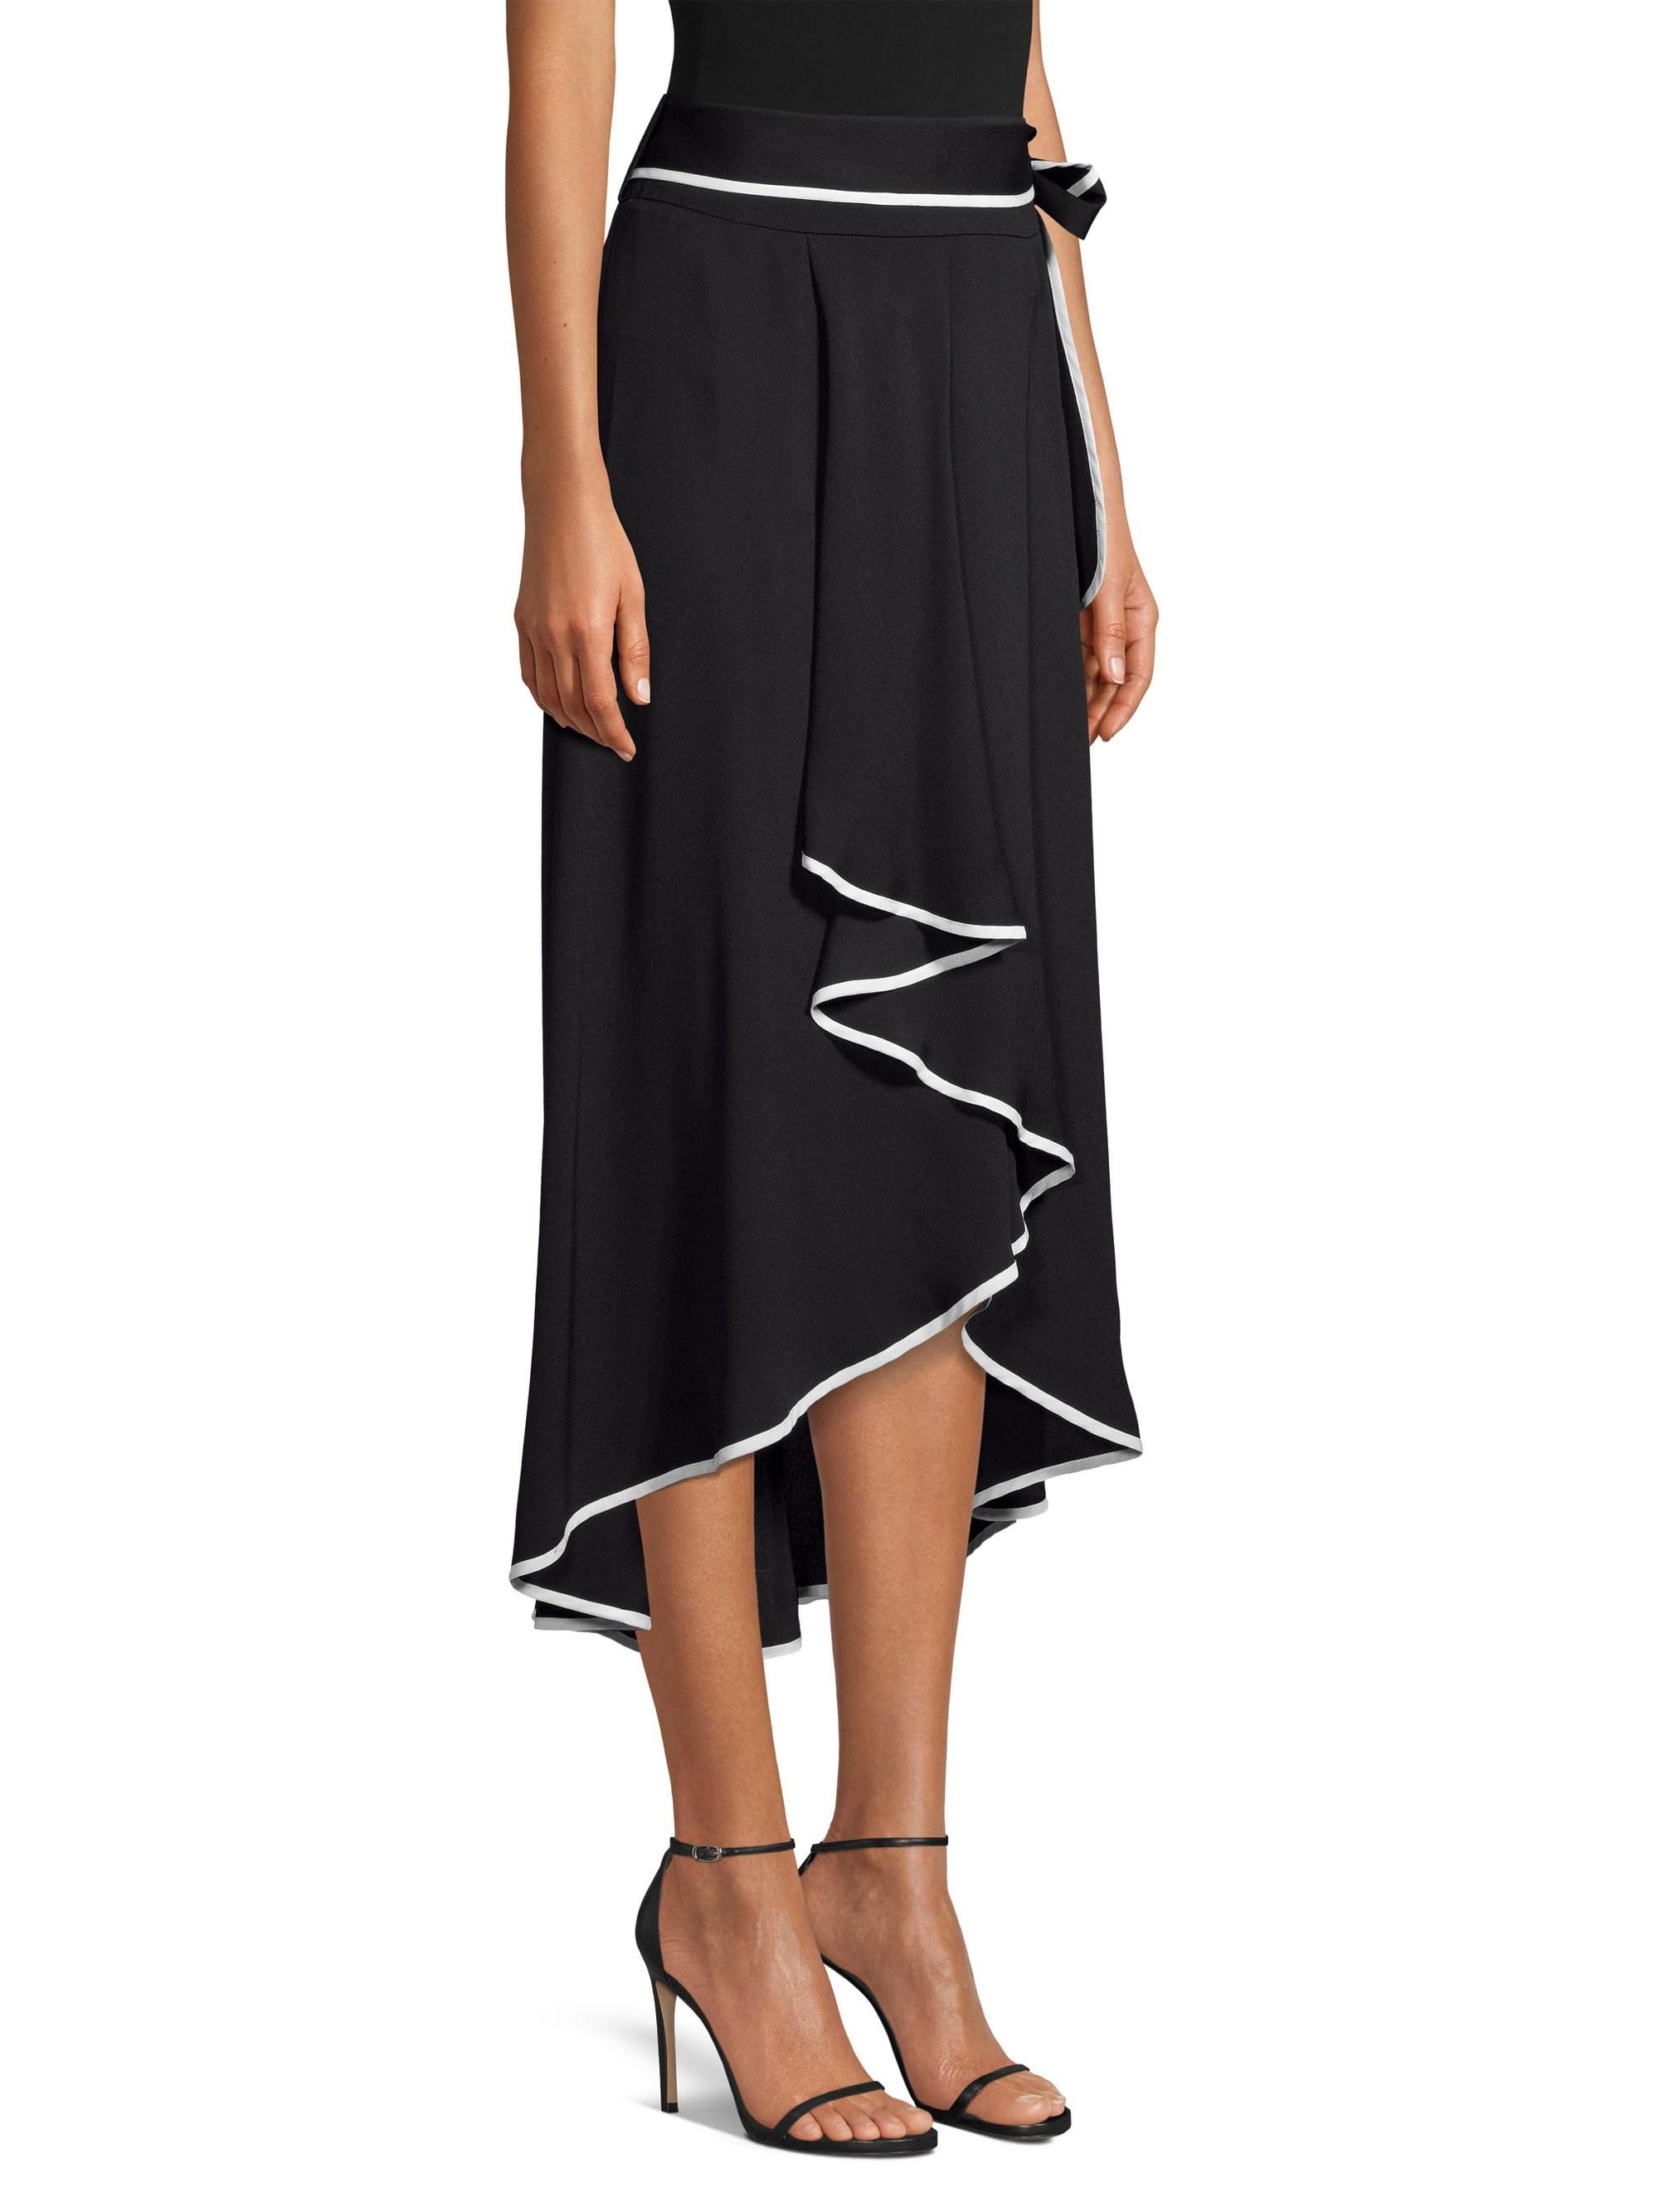 ccae617aa7 Lyst - Beatrice B. Tie-waist Contrast Piping High-low Midi Skirt in ...